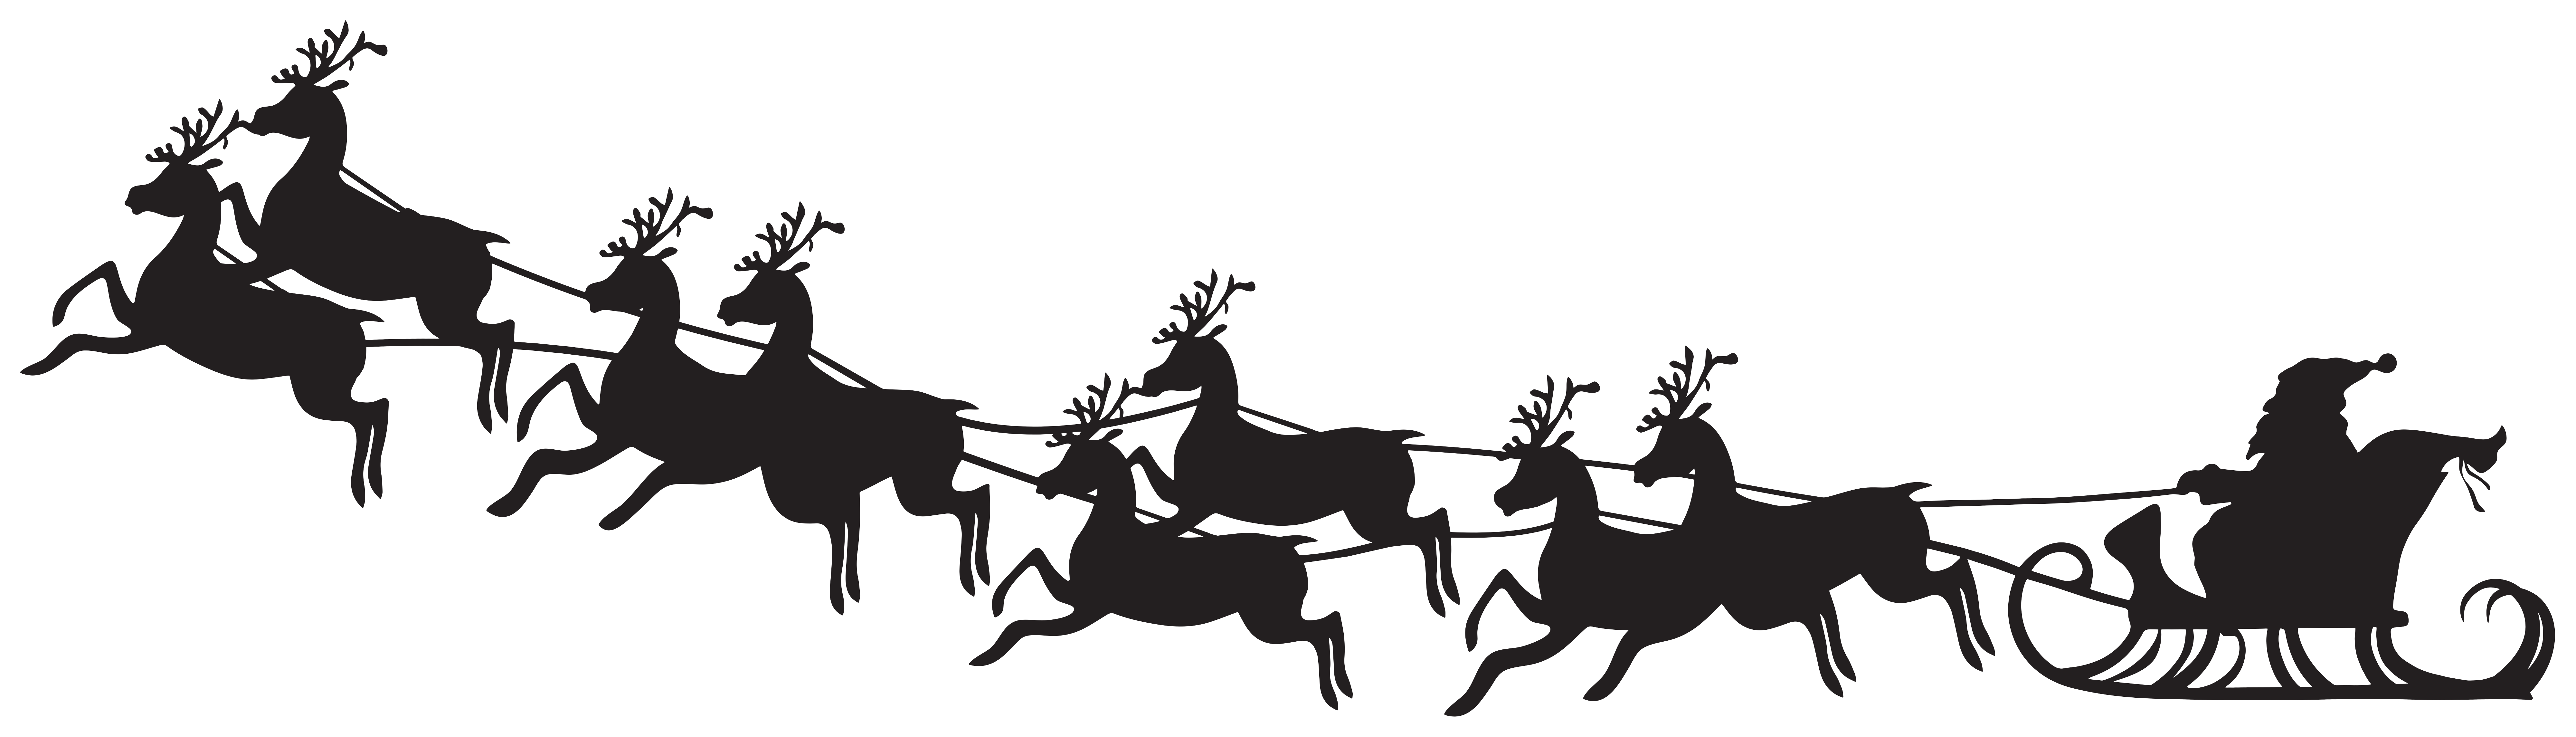 Santa sleigh clipart silhouette transparent library Santa Sleigh Silhouette Clip Art Image | Gallery ... transparent library